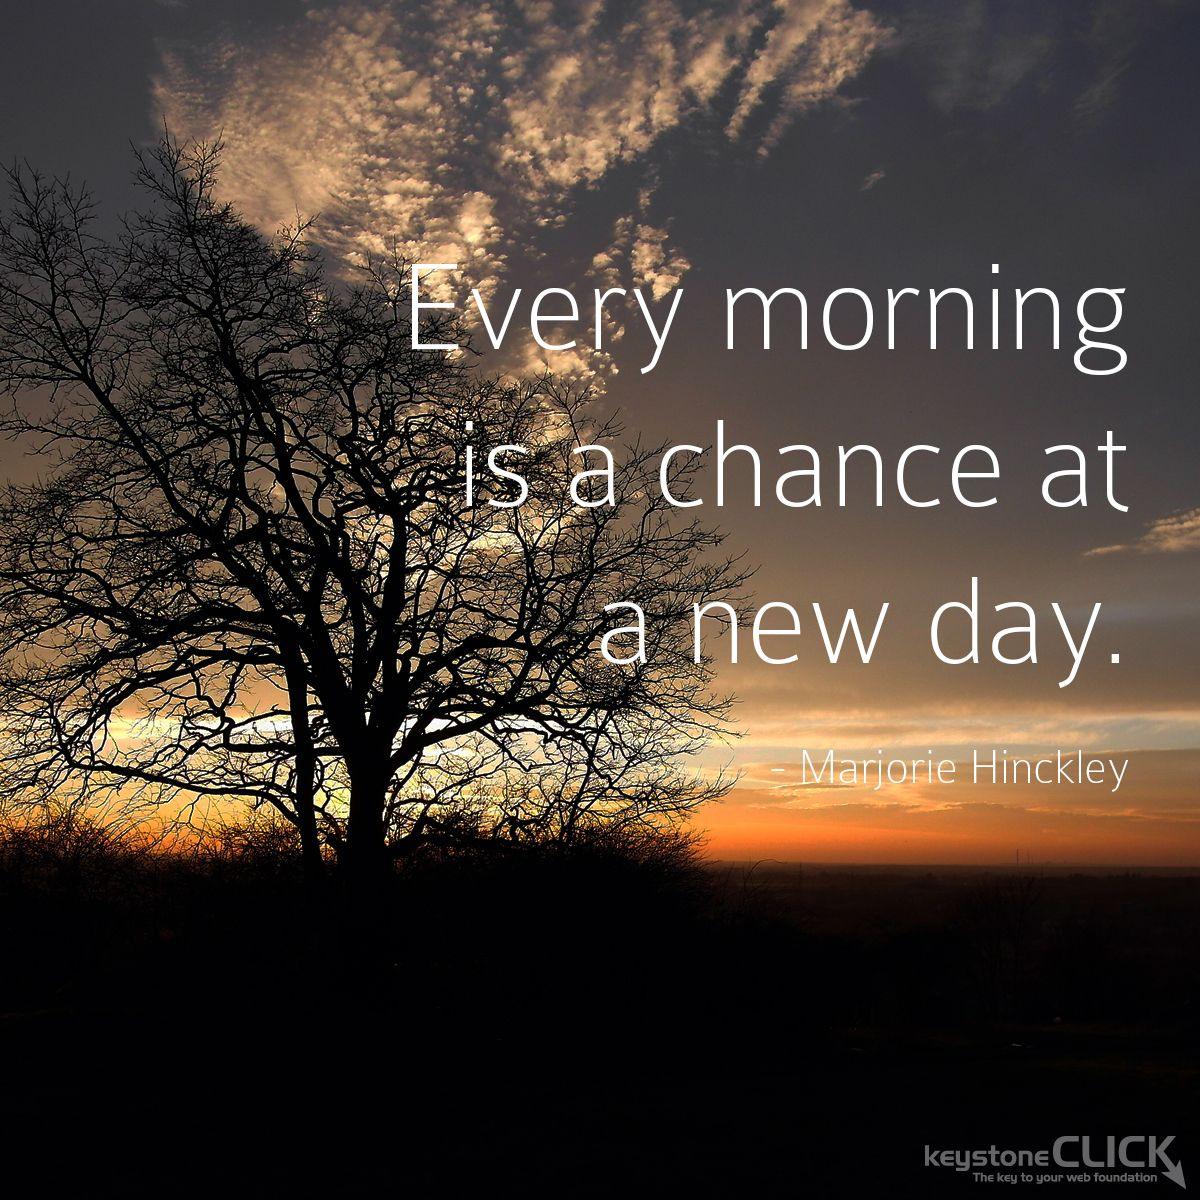 Every Morning Is A Chance At A New Day Inspirational Quotes Digital Marketing Digital Marketing Agency Digital